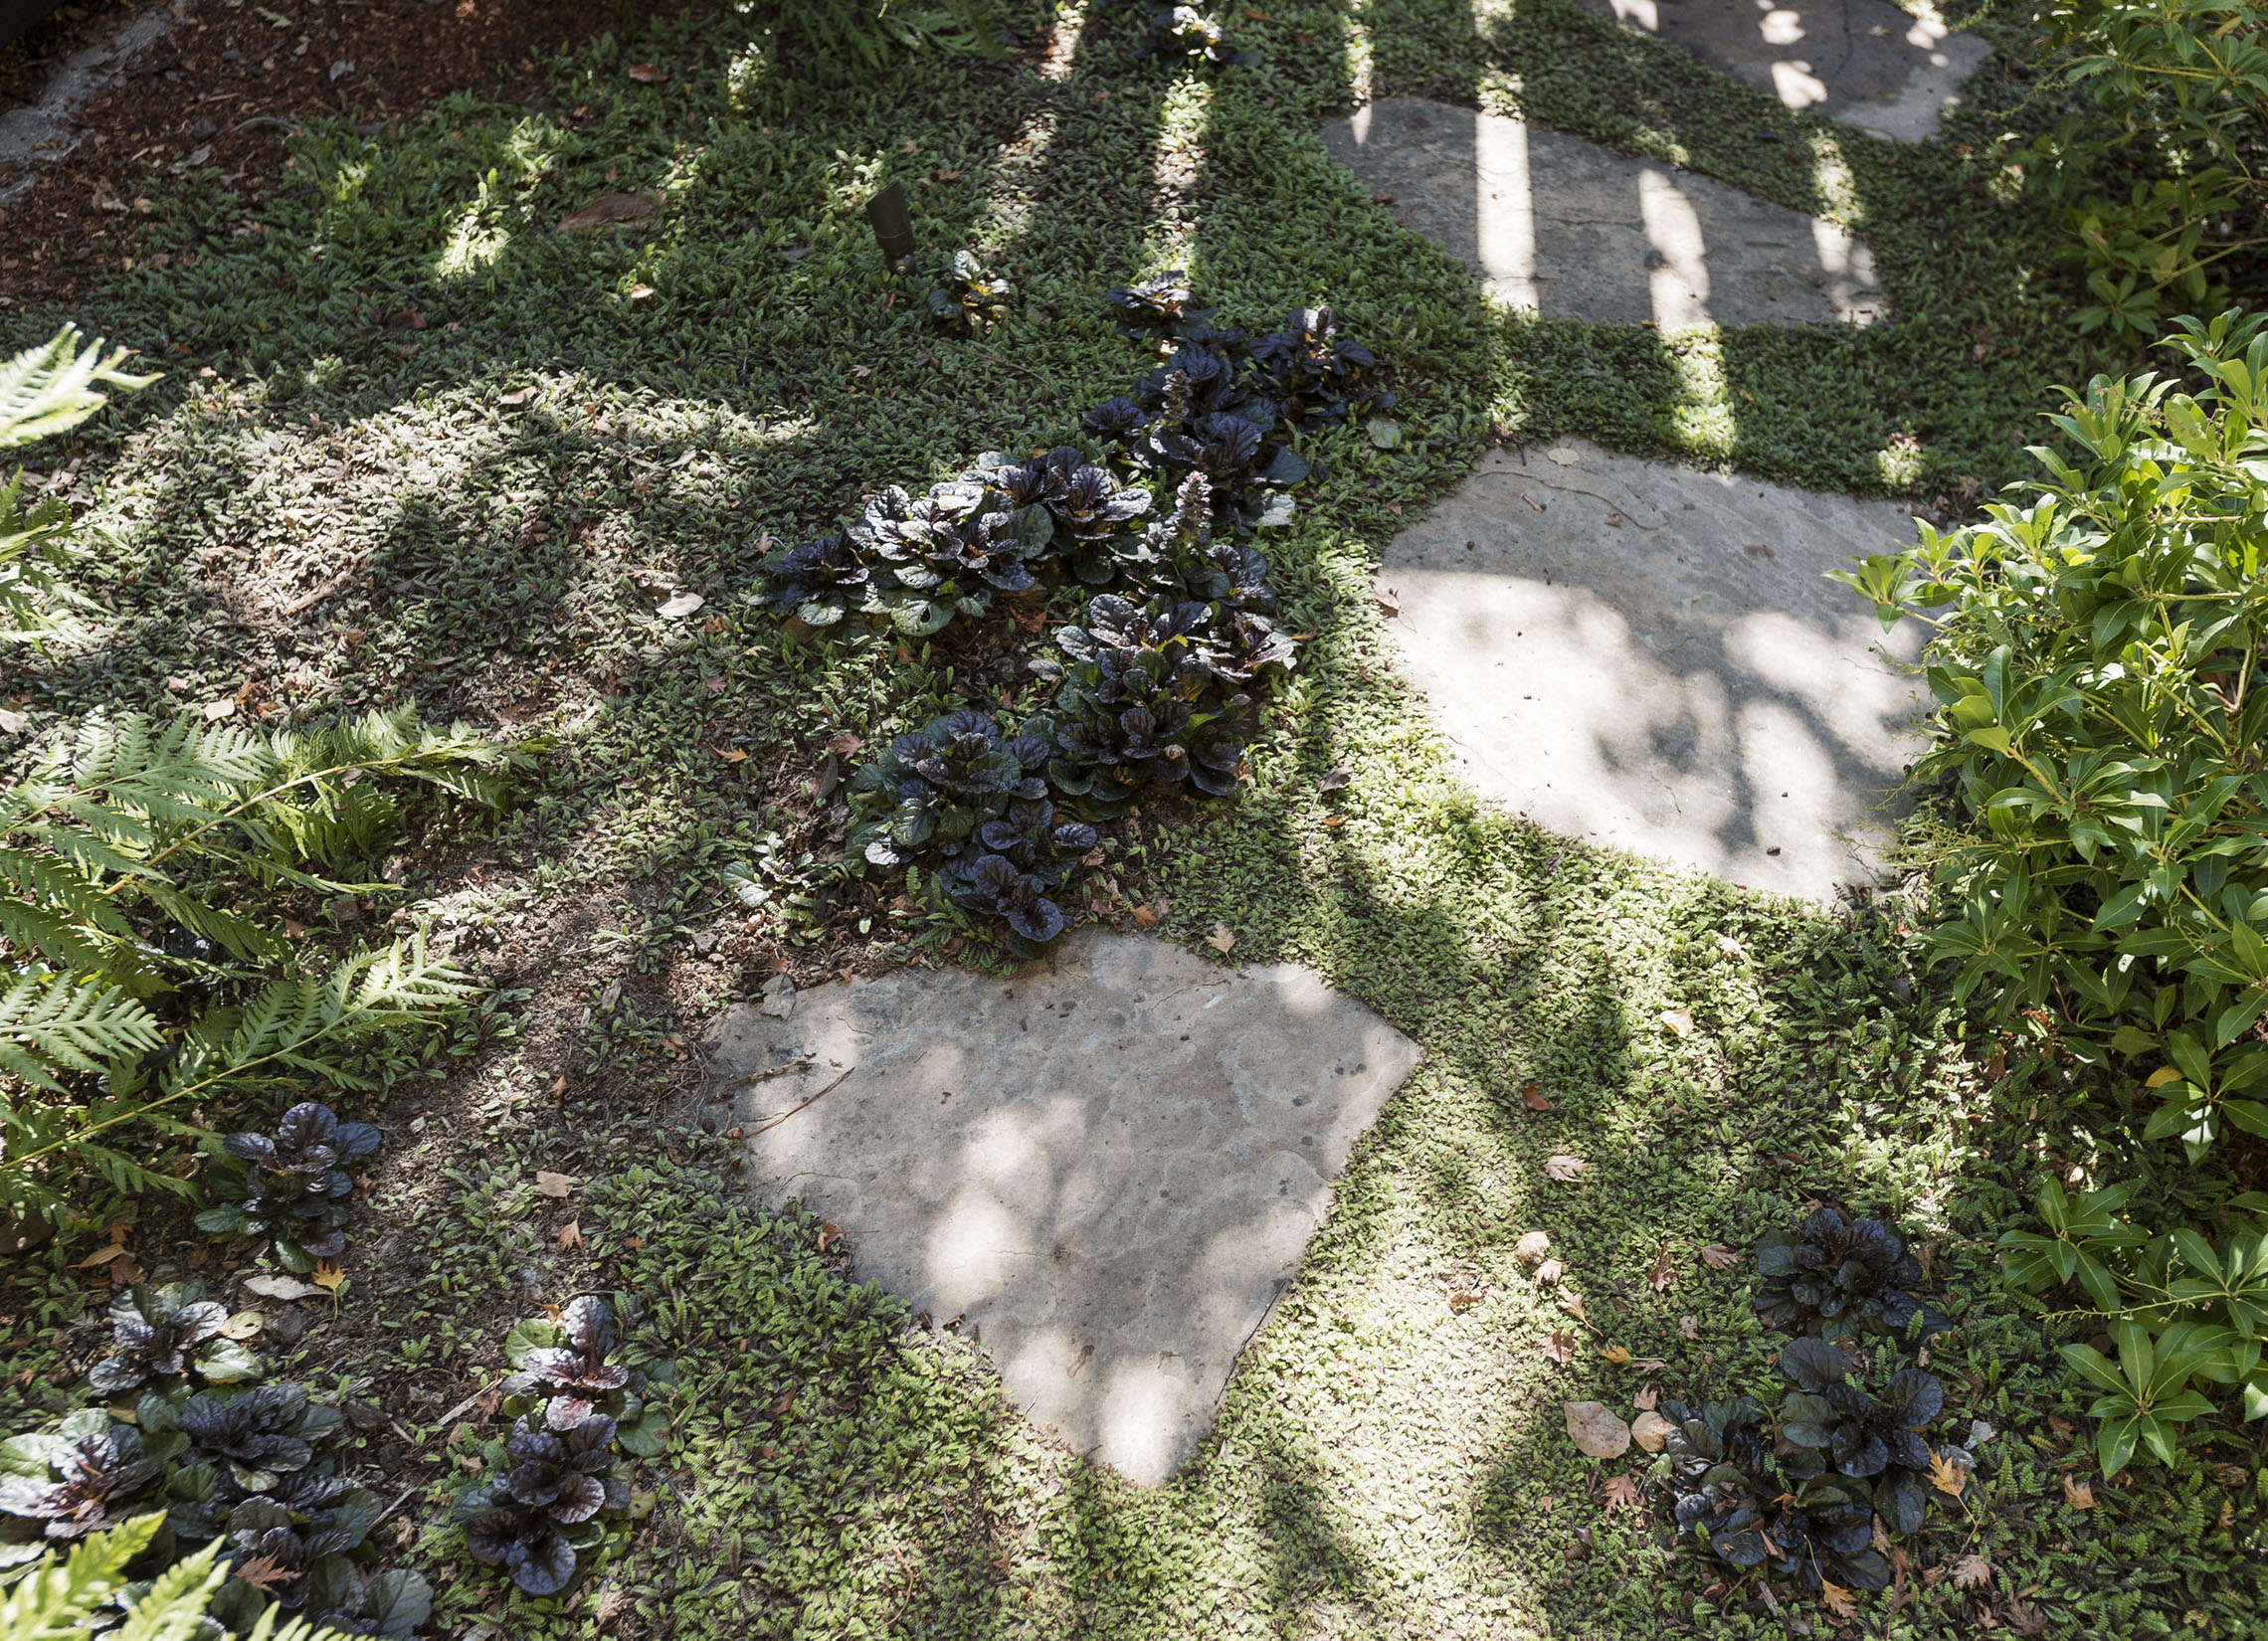 How to plant ground cover between pavers - Plants Between Pavers Dollhouse Fern Matthew Williams